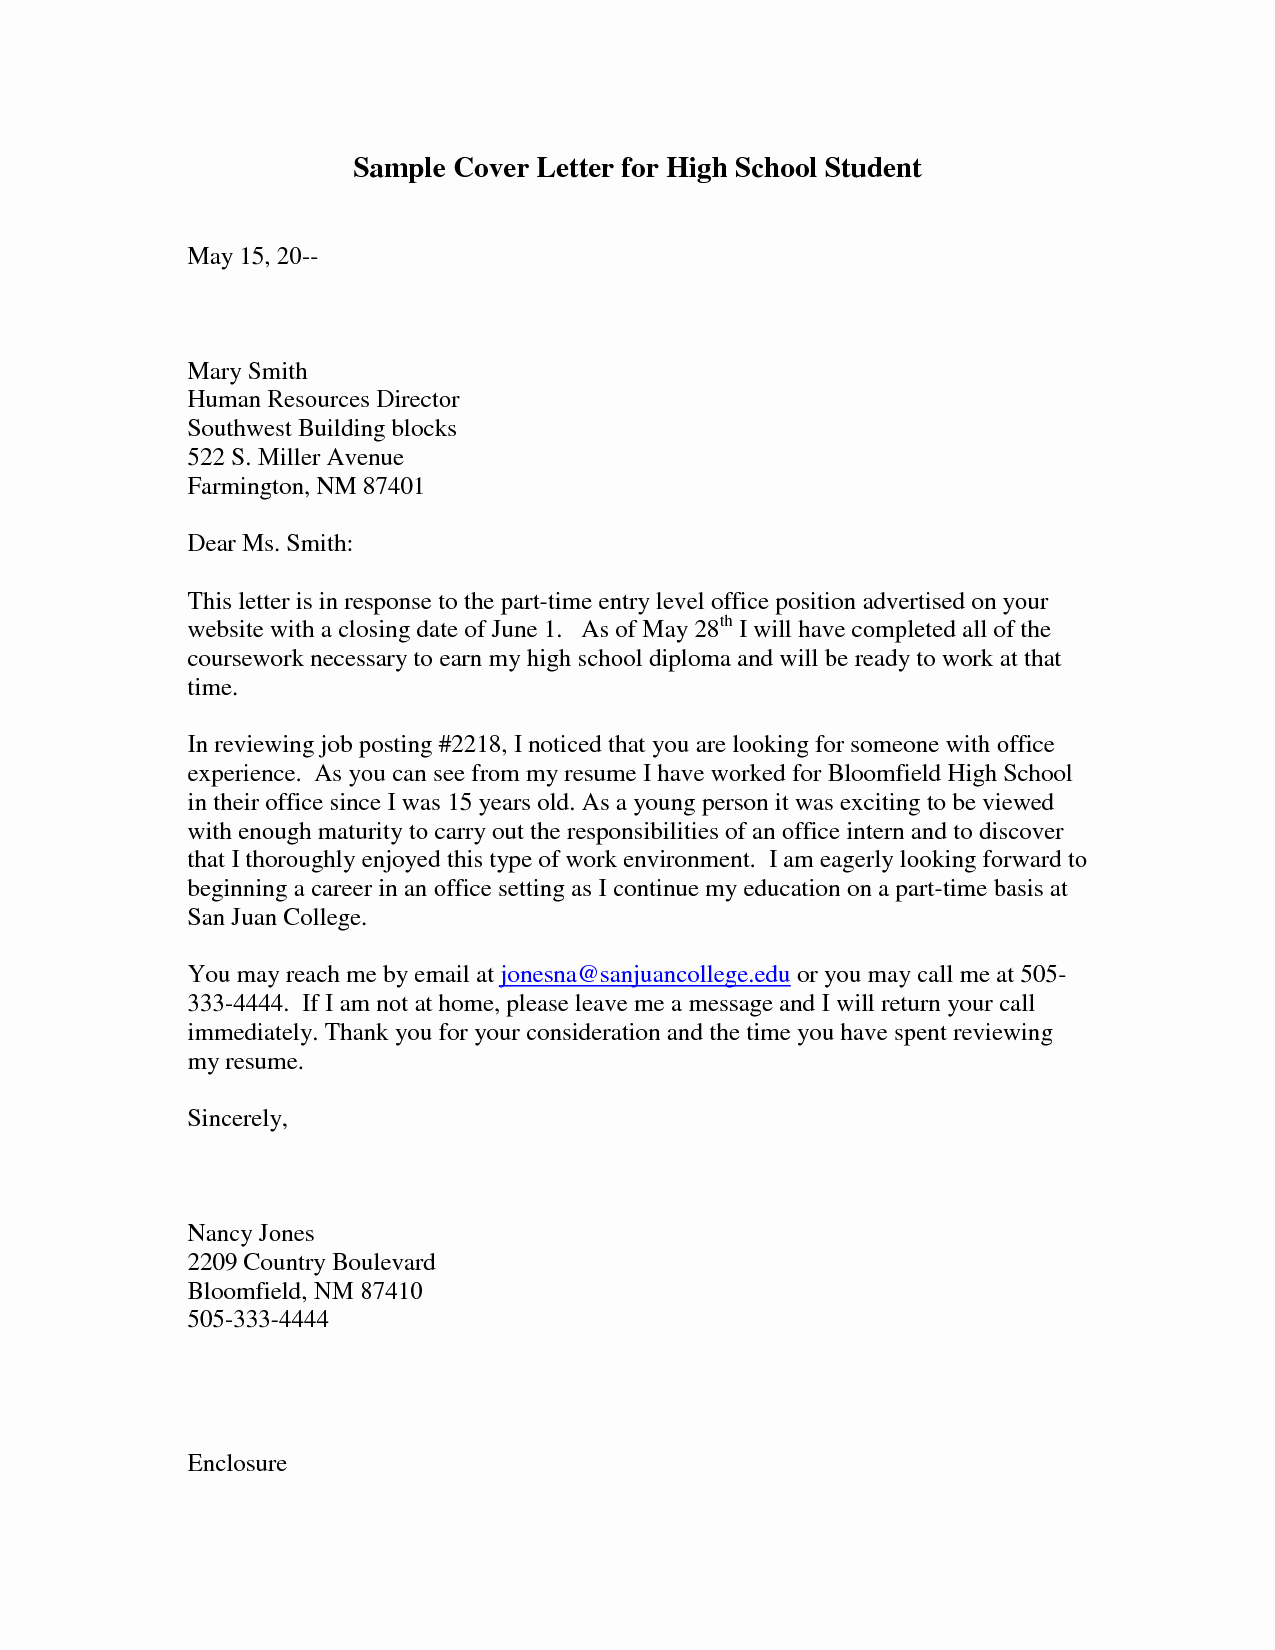 Cover Letter Examples Student Inspirational Sample Cover Letter for High School Student with No Work